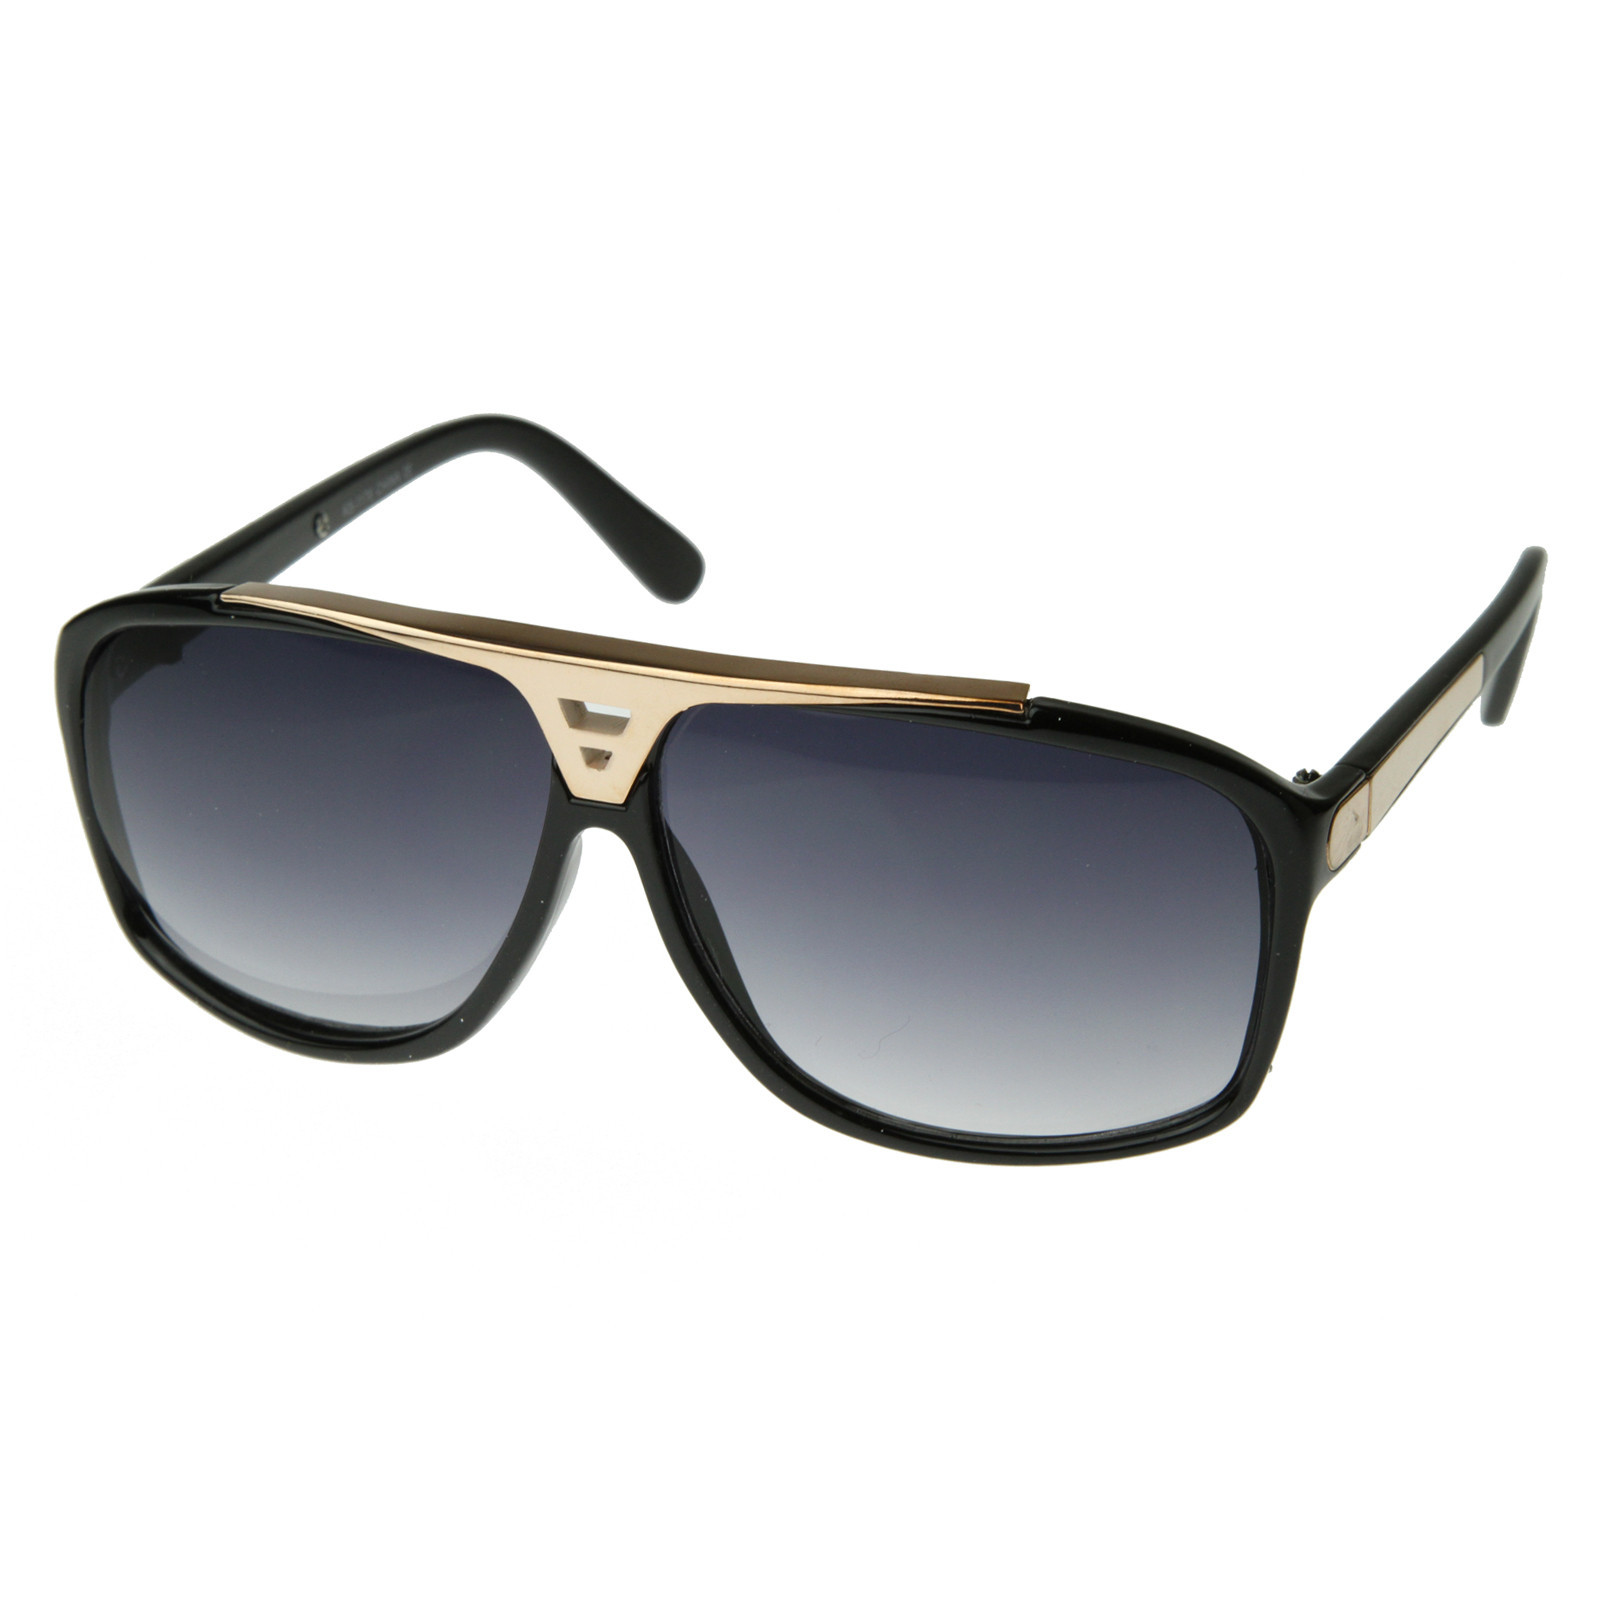 aviator sunglasses designer  Designer Inspired Fashion Square Flat Top Aviator Sunglasses 2903 ...